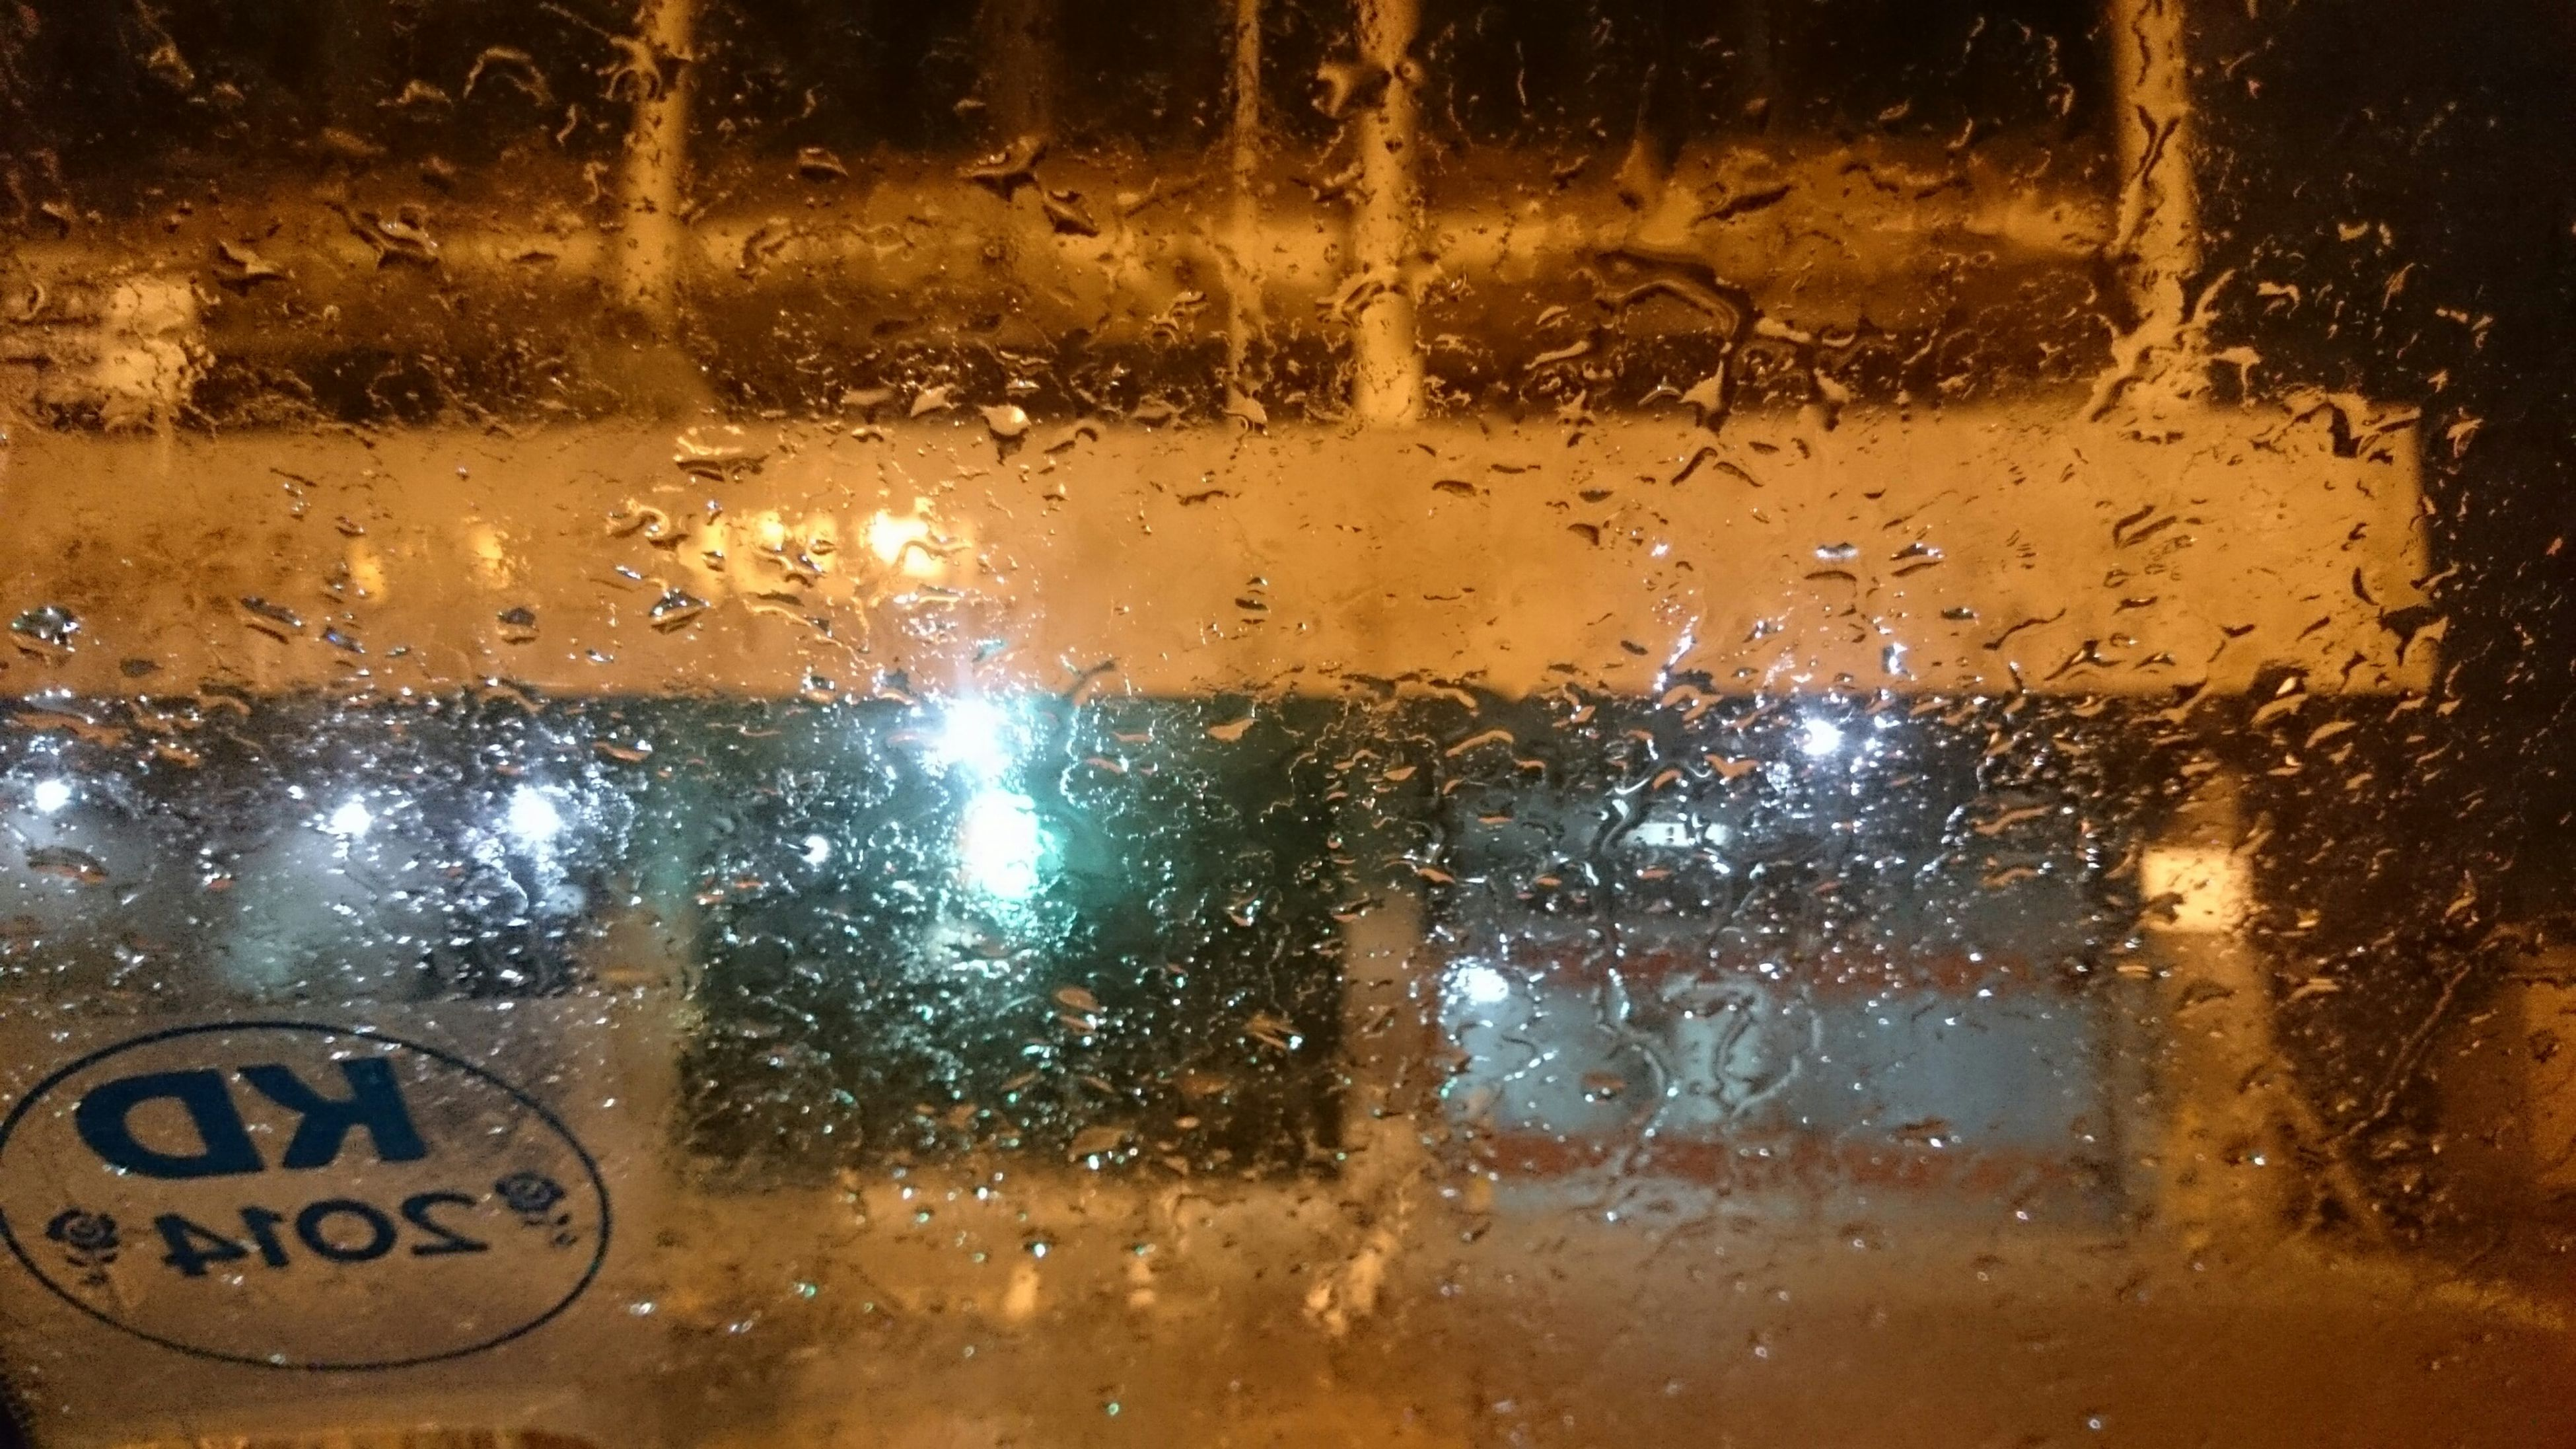 glass - material, drop, wet, window, full frame, transparent, water, indoors, backgrounds, rain, close-up, raindrop, season, weather, glass, text, communication, focus on foreground, condensation, no people